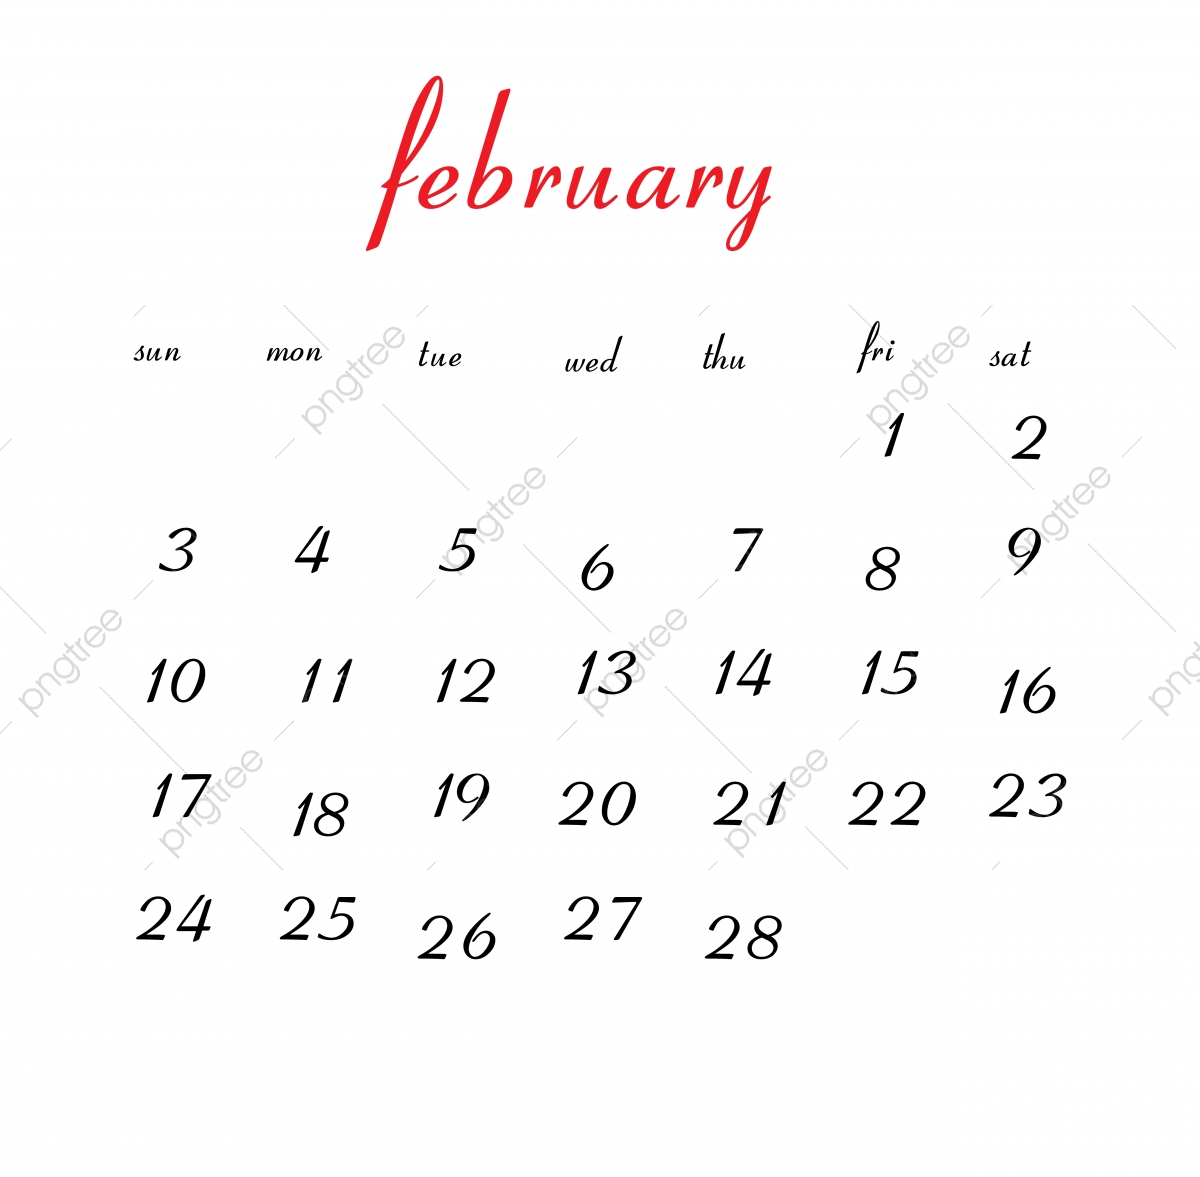 February 2019 Calendarpng February 2019 Calendar, Calendar, Clean, White PNG and Vector with